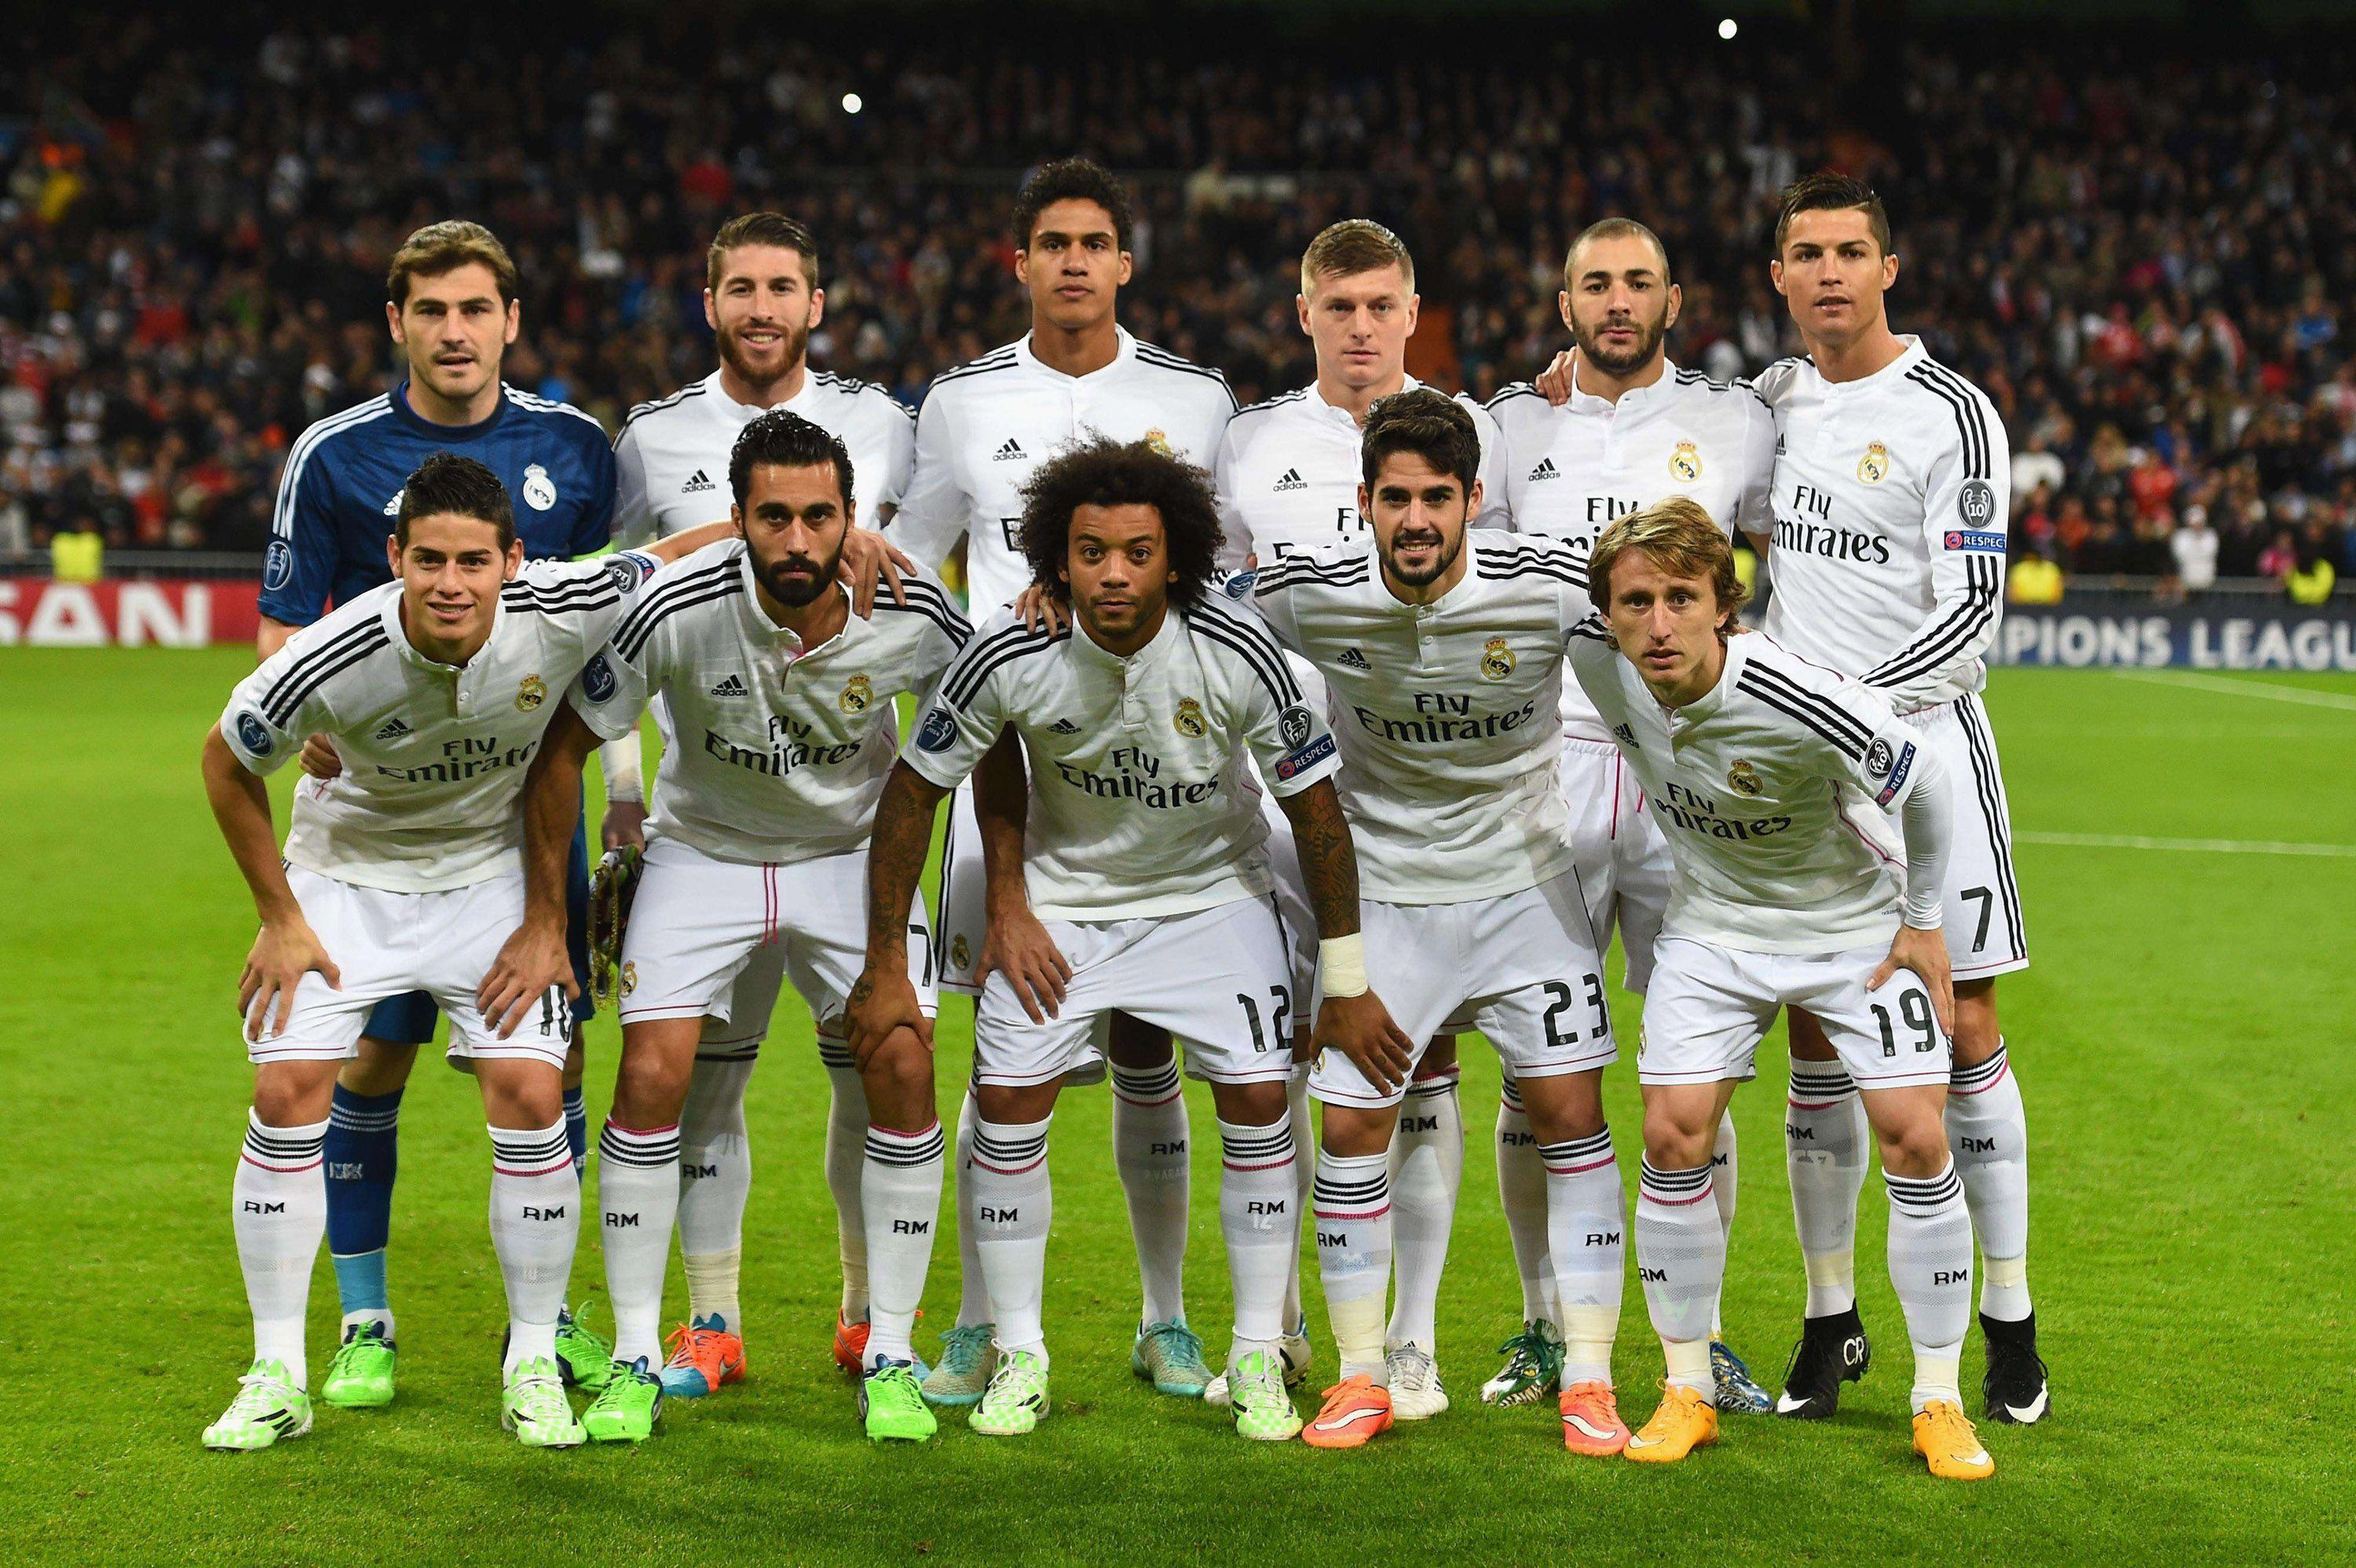 Real Madrid Pictures Wallpapers – Team Players and Names for 2014